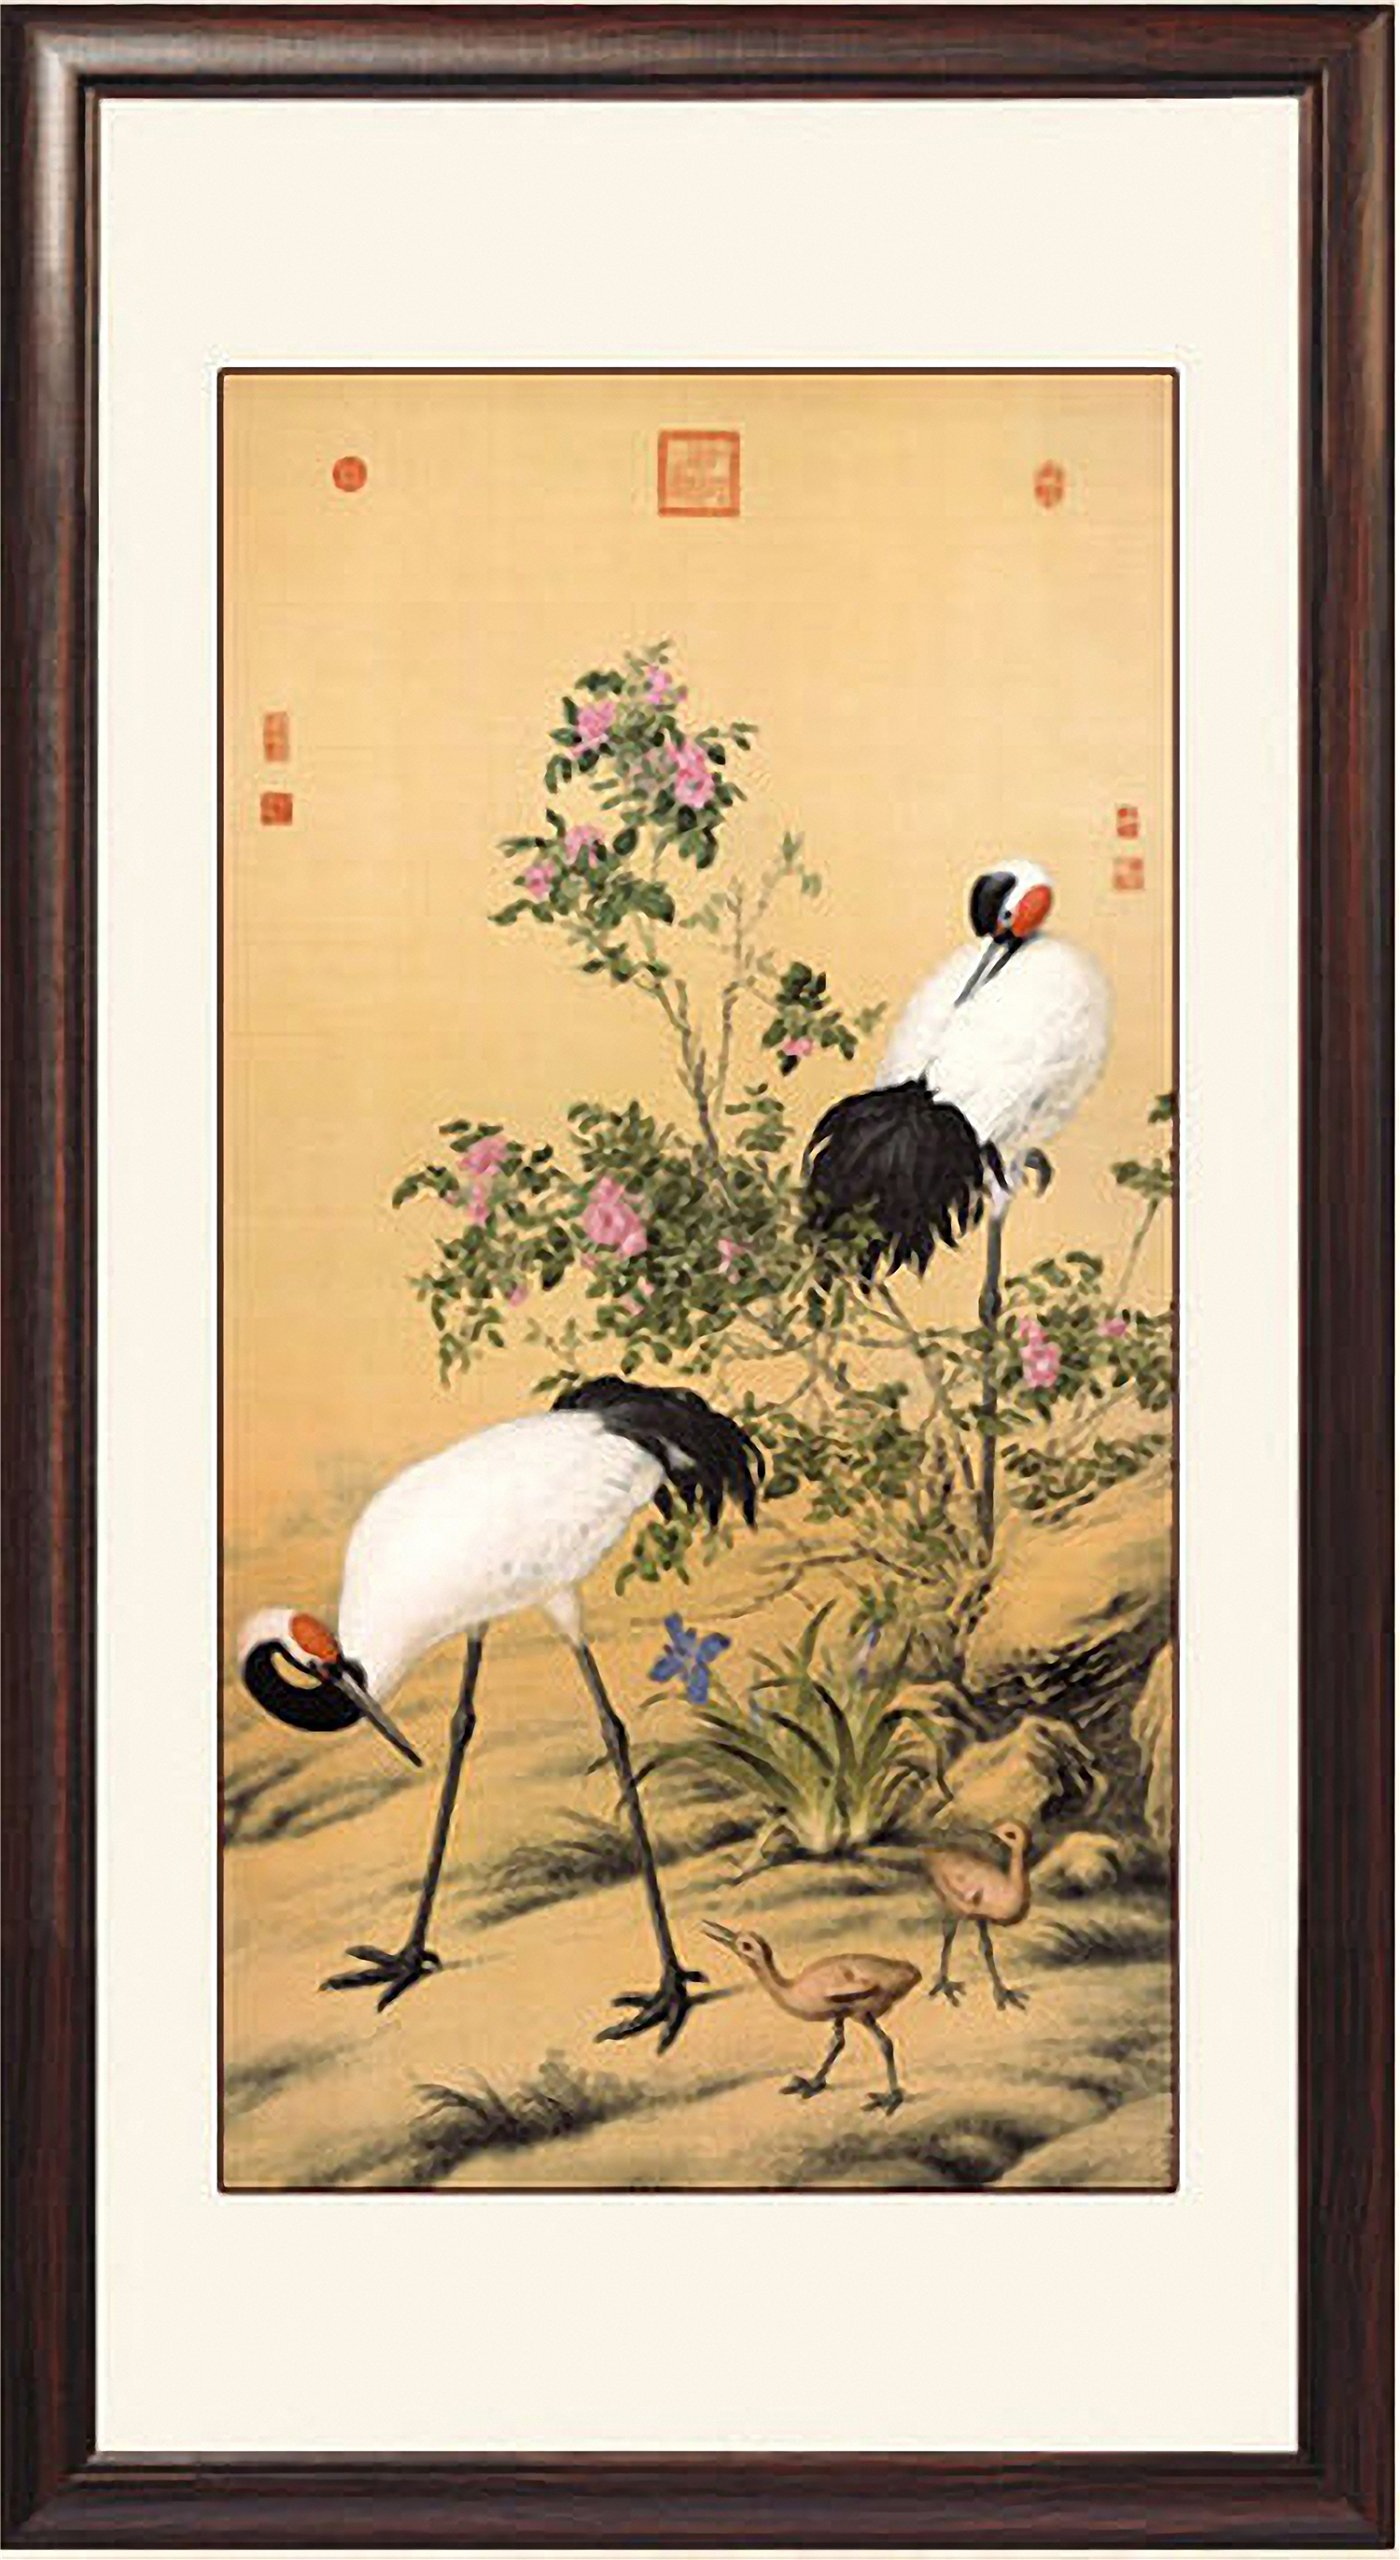 INK WASH Framed Chinese Art Prints Collection Wall Art and Decor Asian Animals Crane on Rice Paper Feng Shui for Living Room and Bedroom Ready to Hang